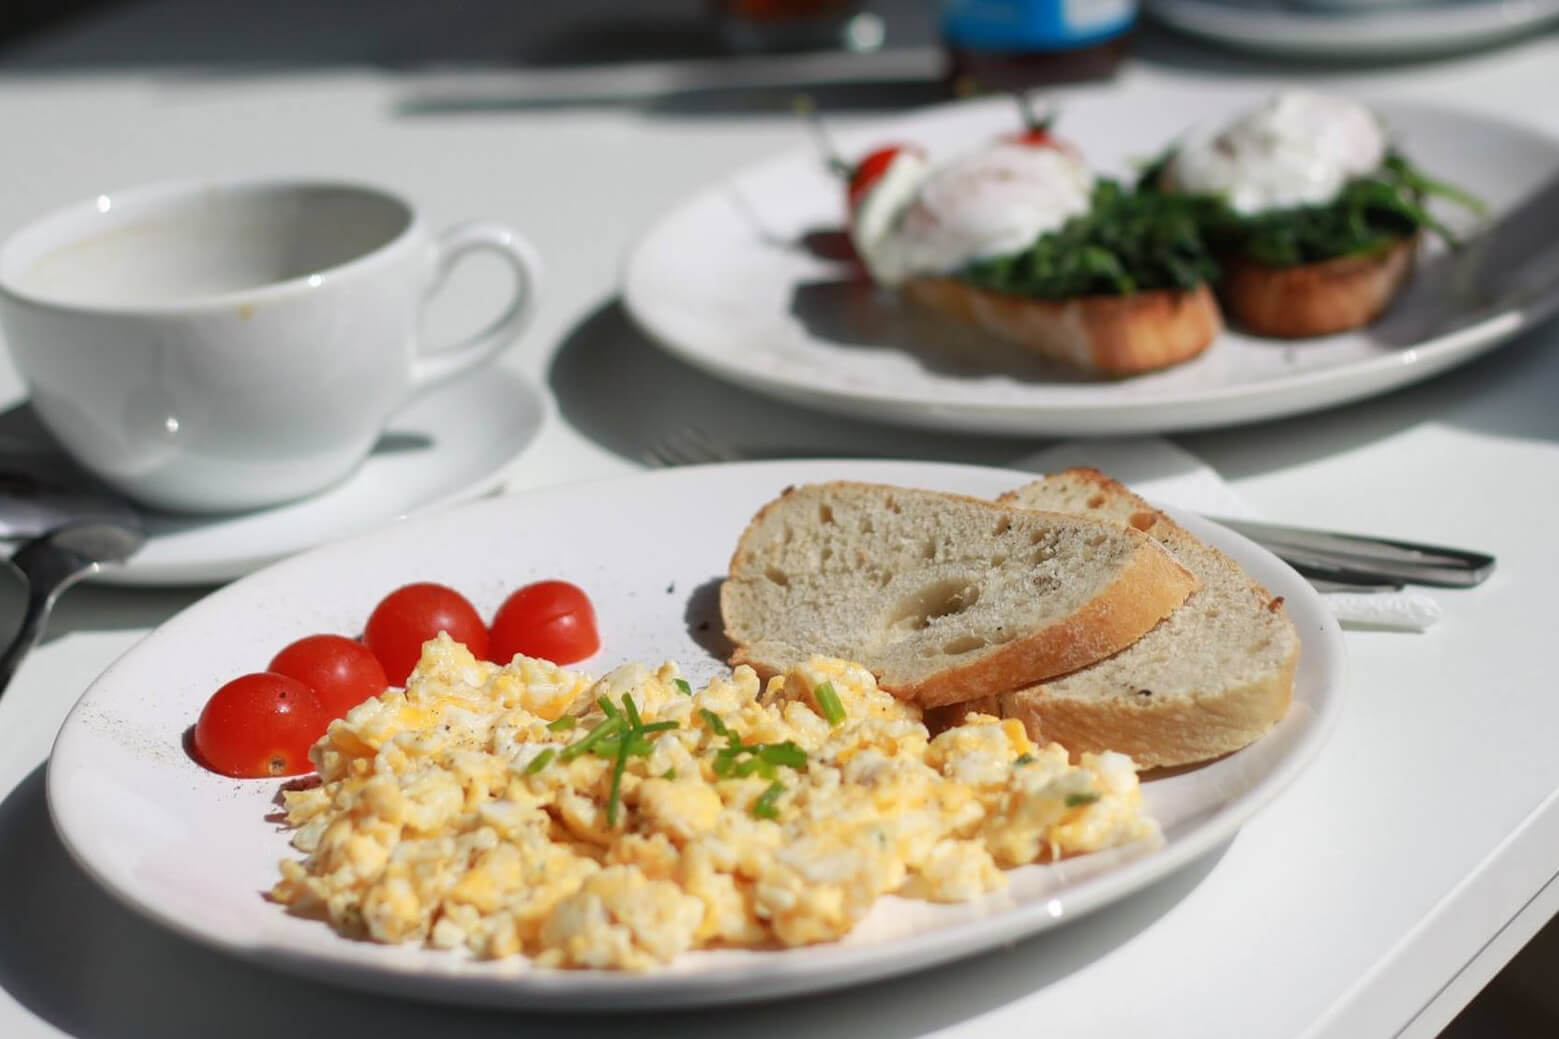 Loaded Veggie Scrambled Eggs<br><span>with Mushrooms + Peppers</span>